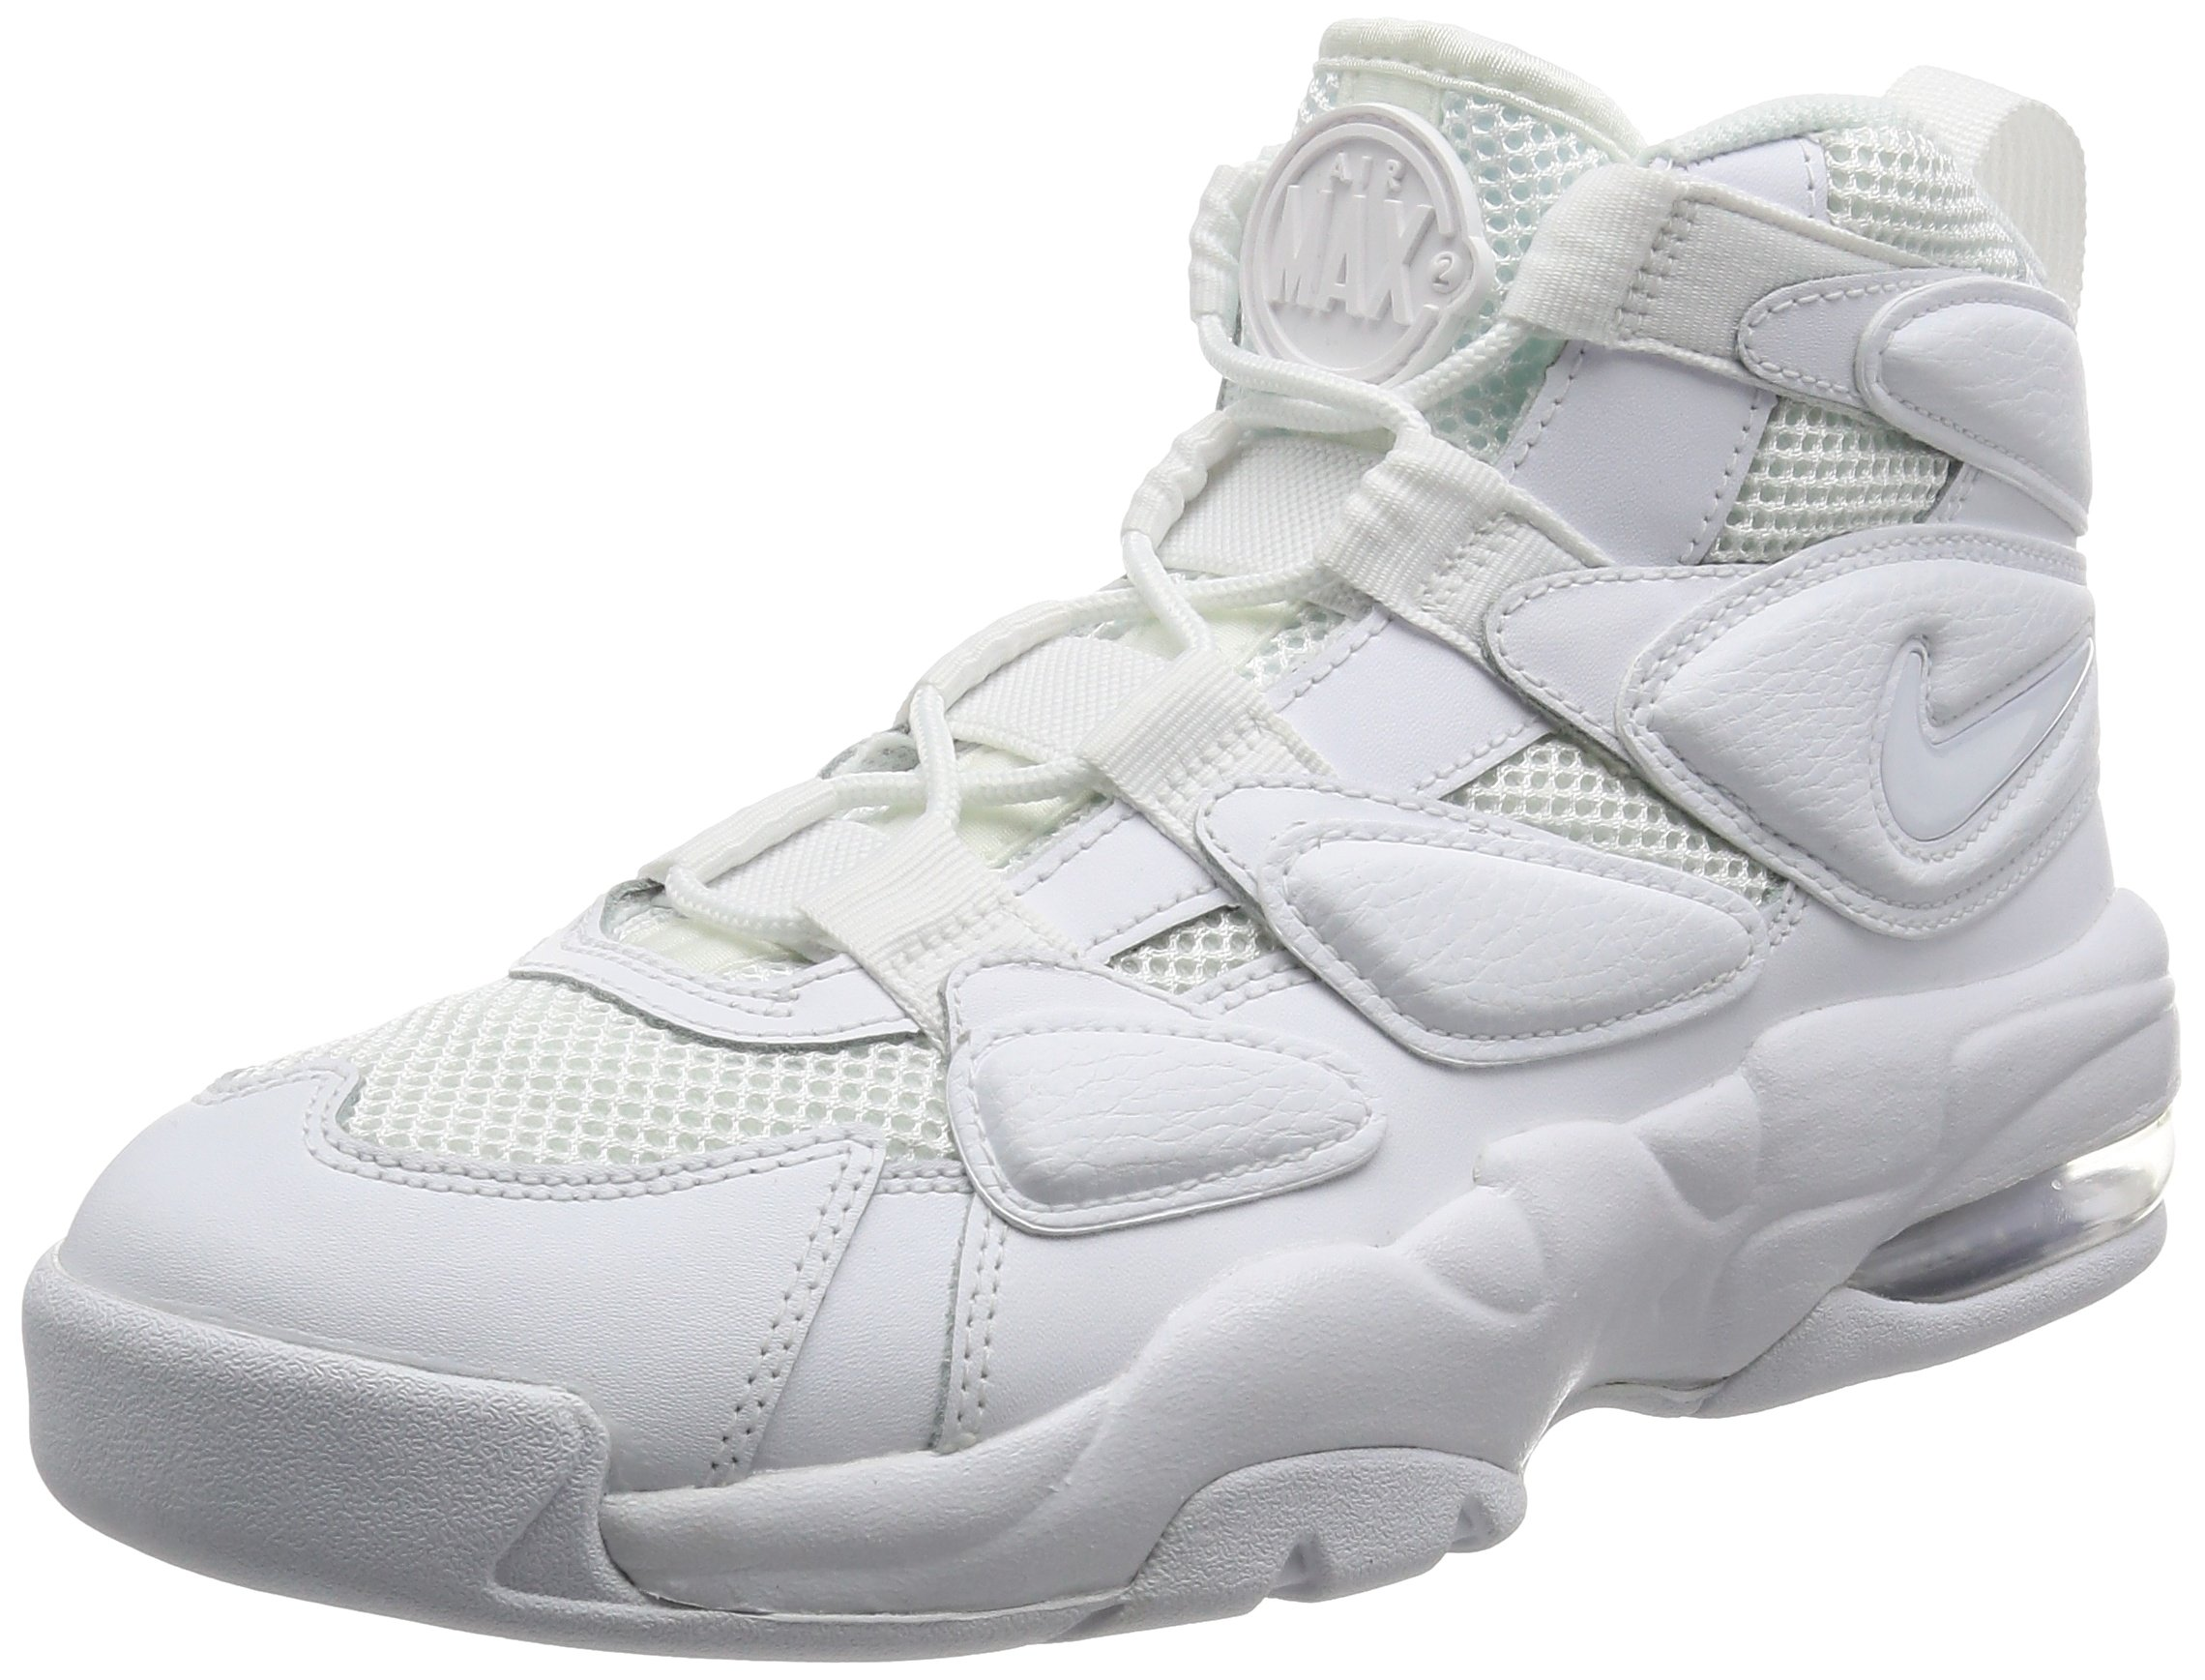 competitive price 0fd85 b3deb Galleon - Nike Mens Air Max2 Uptempo '94 Leather Basketball Shoes White 10  Medium (D)